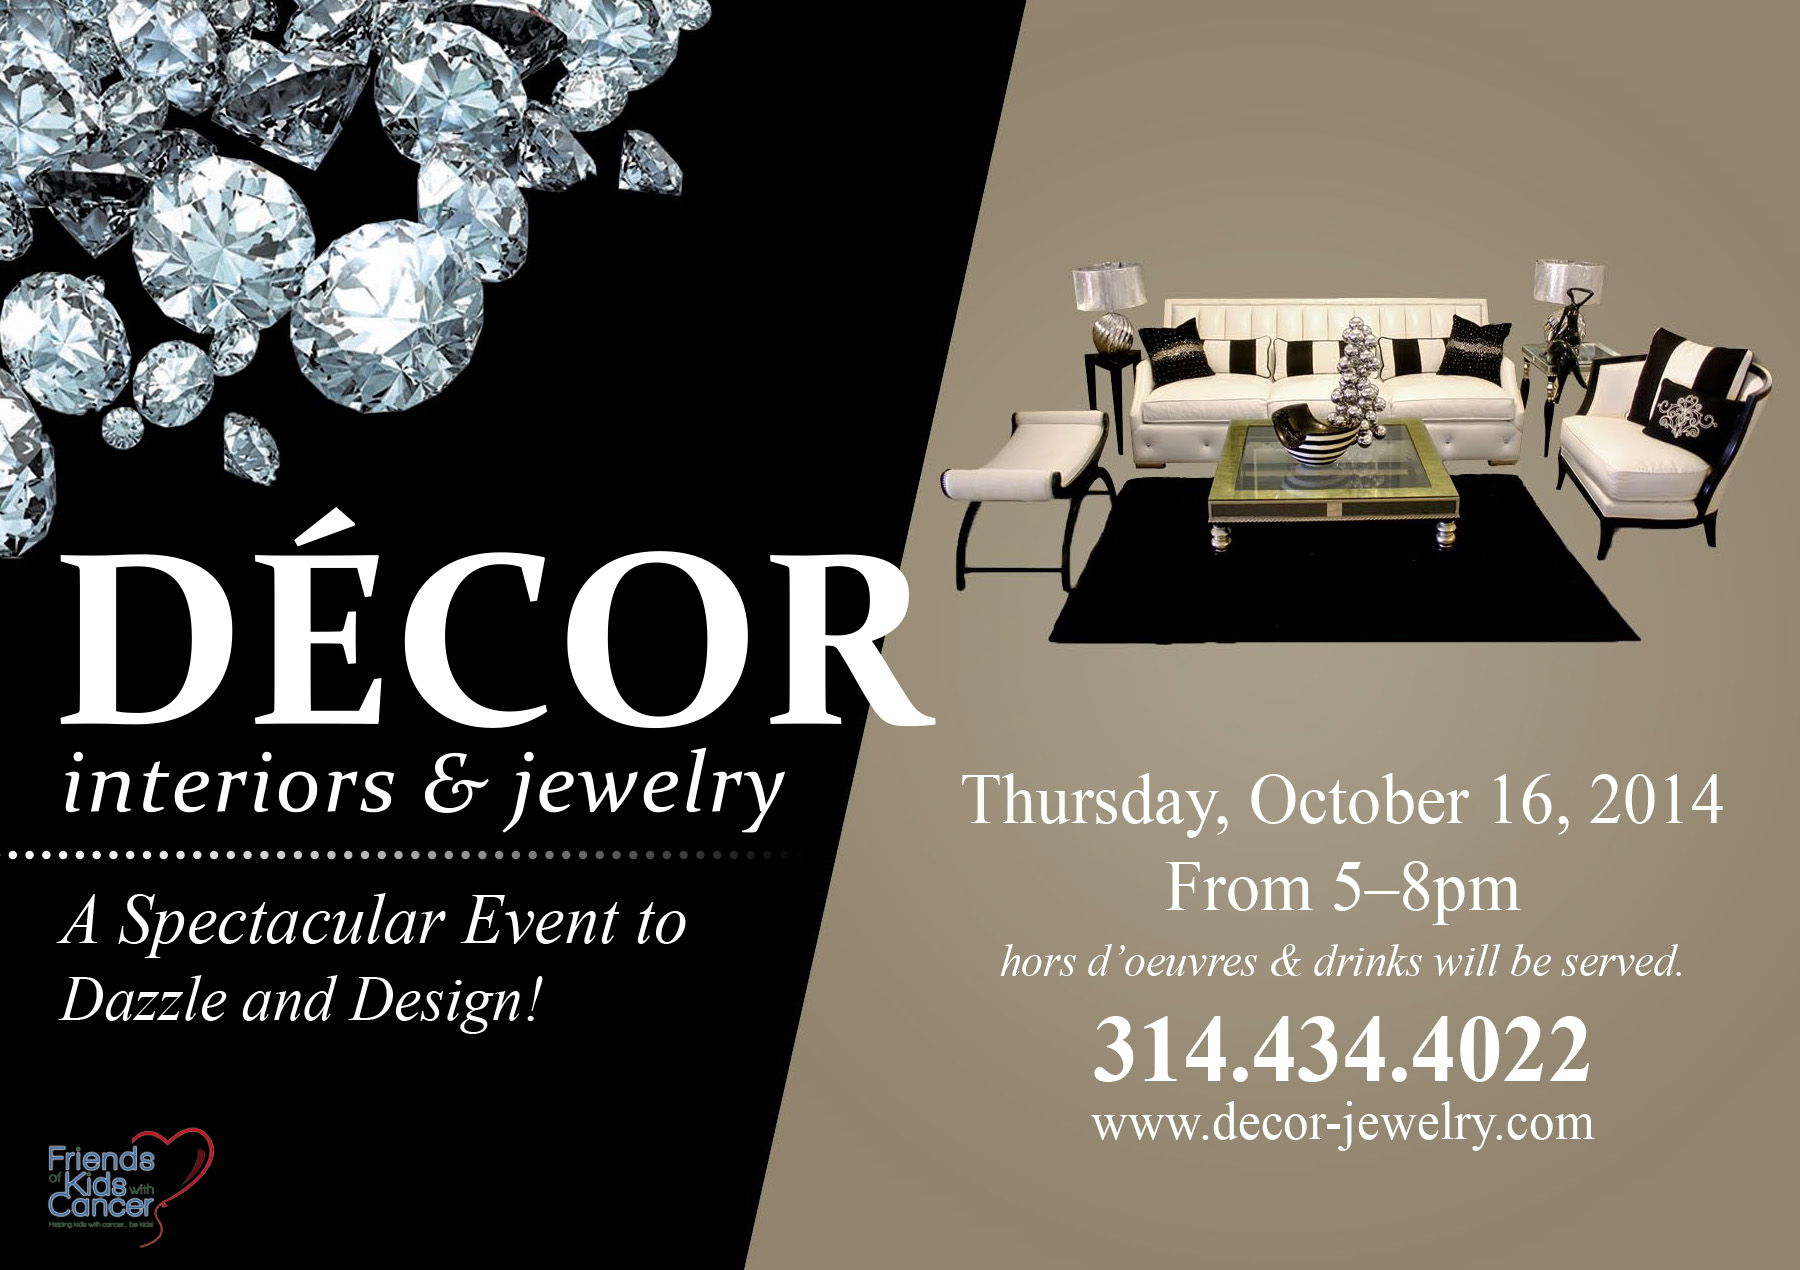 Friends of Kids with Cancer Decor Interiors Jewelry party